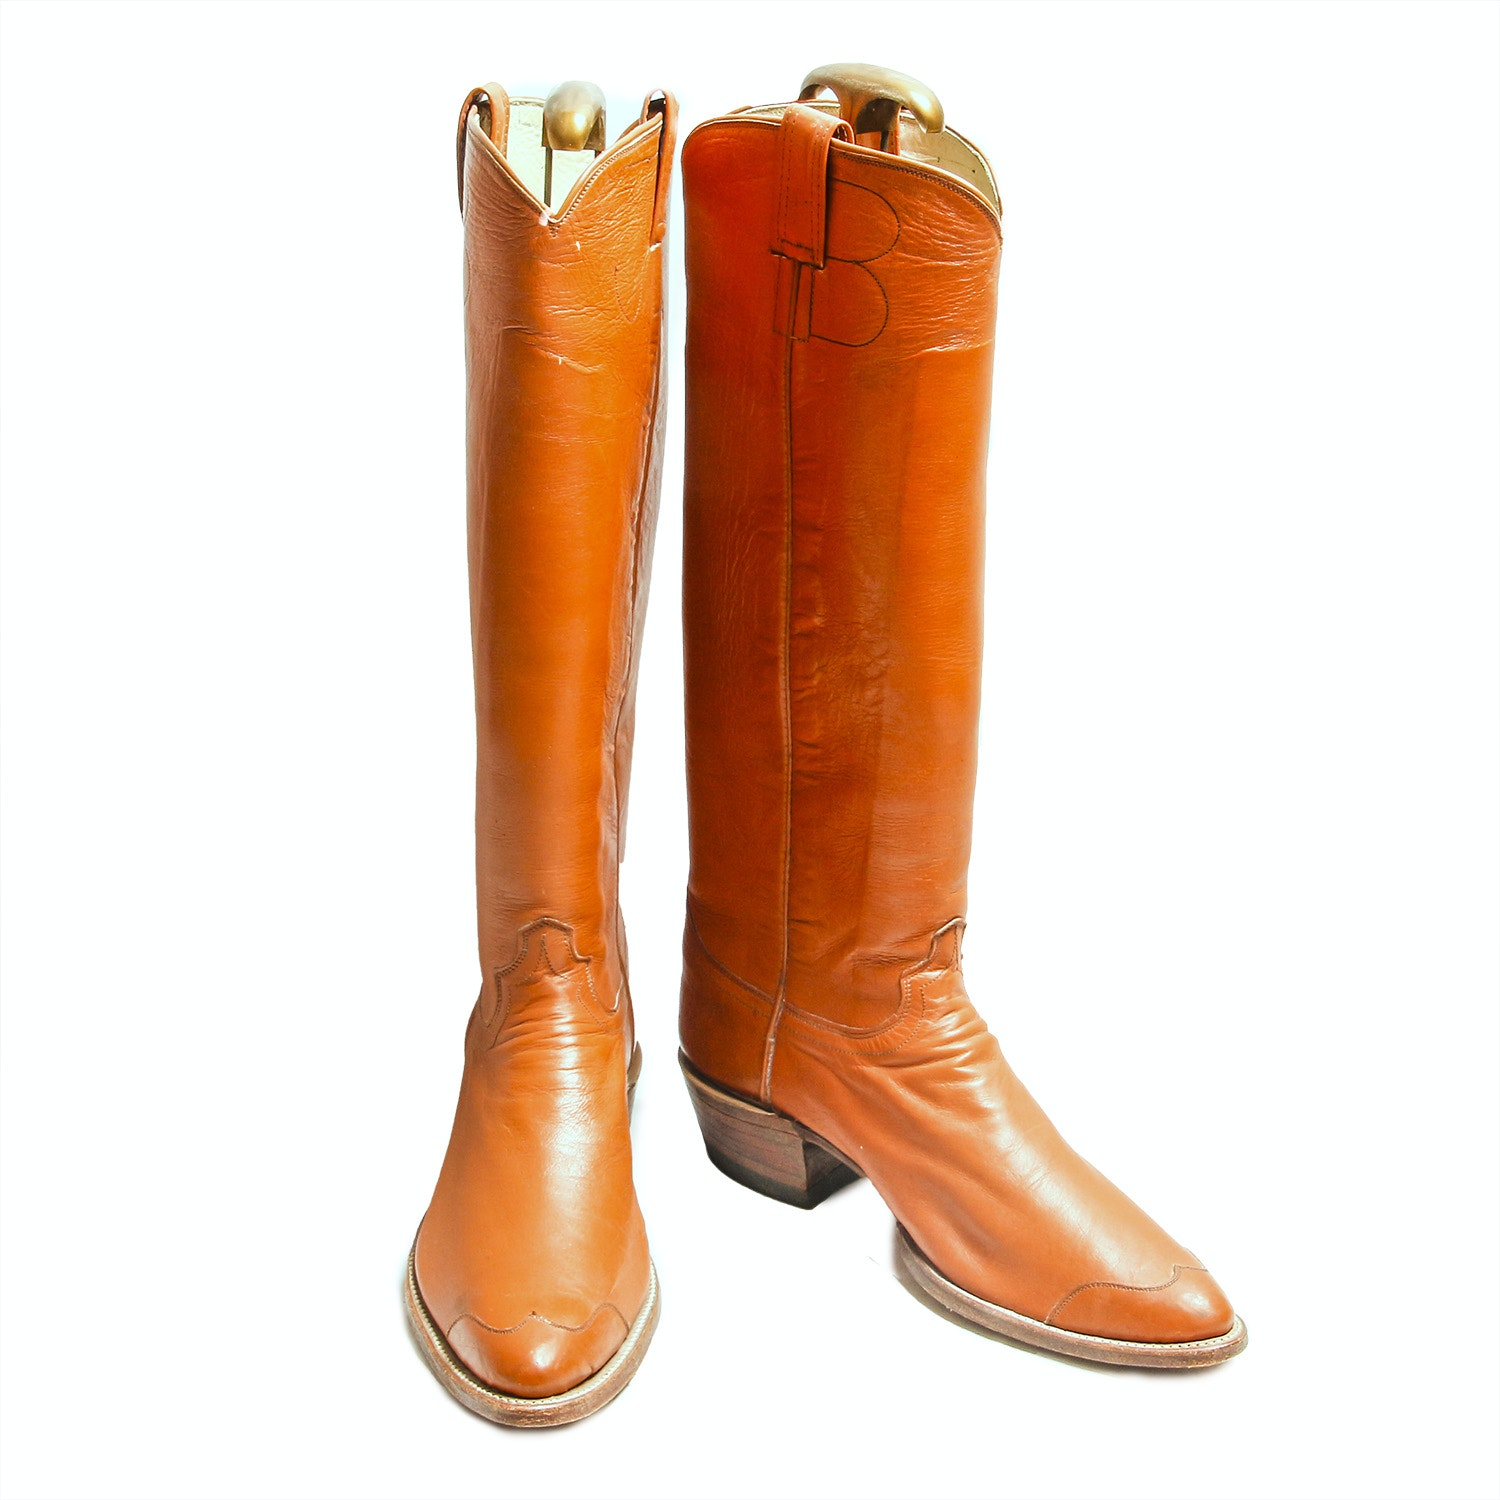 Leather Riding Boots by R. Custom Fine Boots